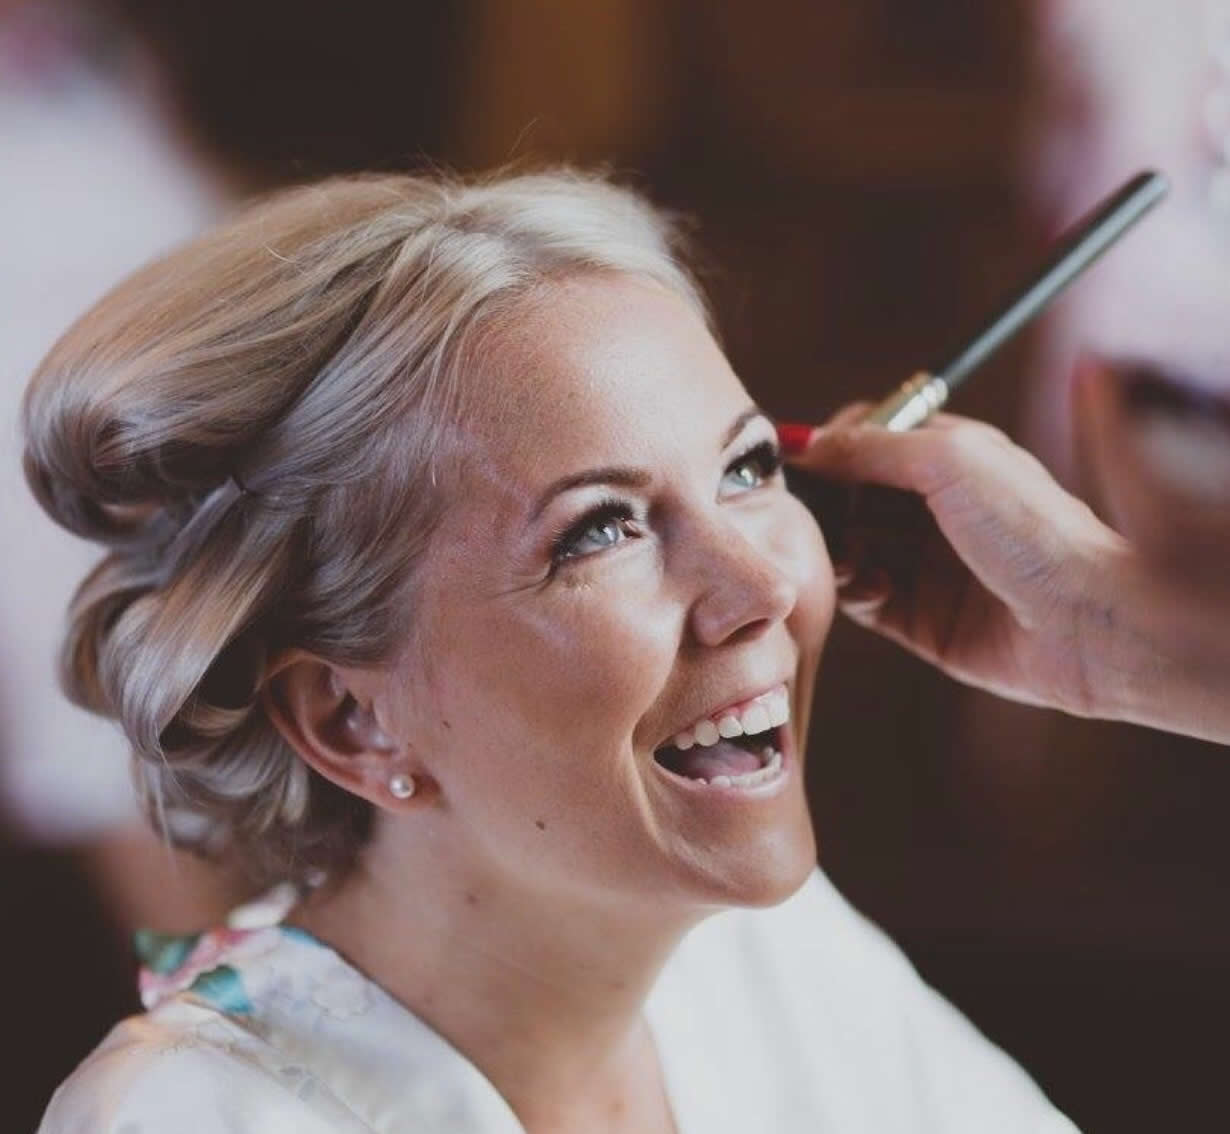 Bridal hair and makeup trial